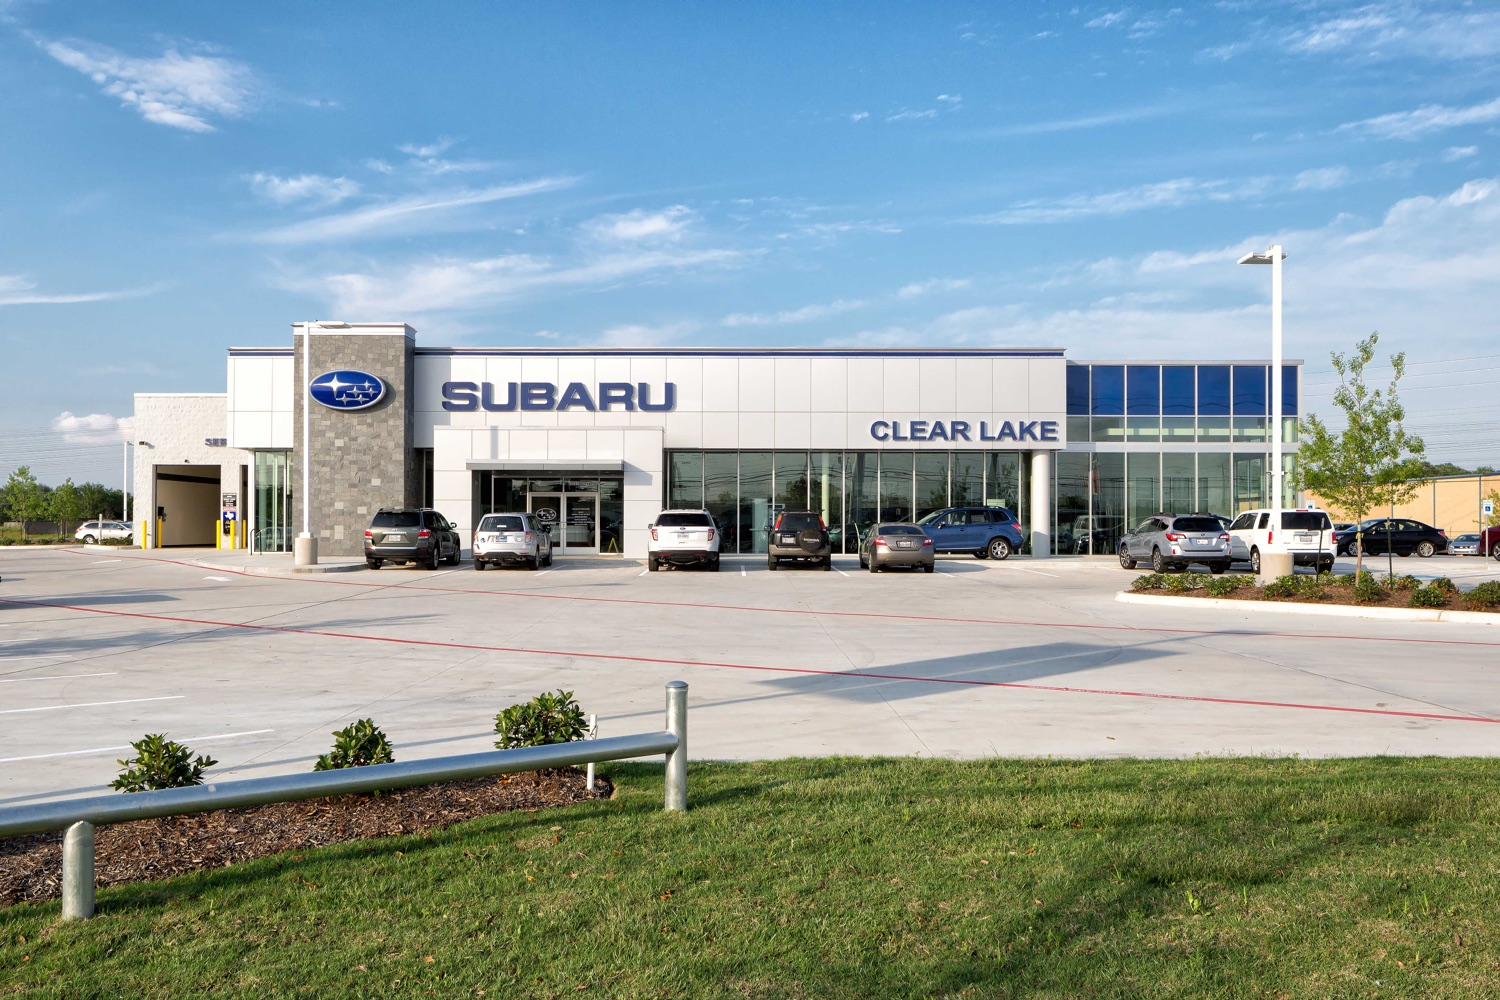 a-Subaru-Clear-Lake_043